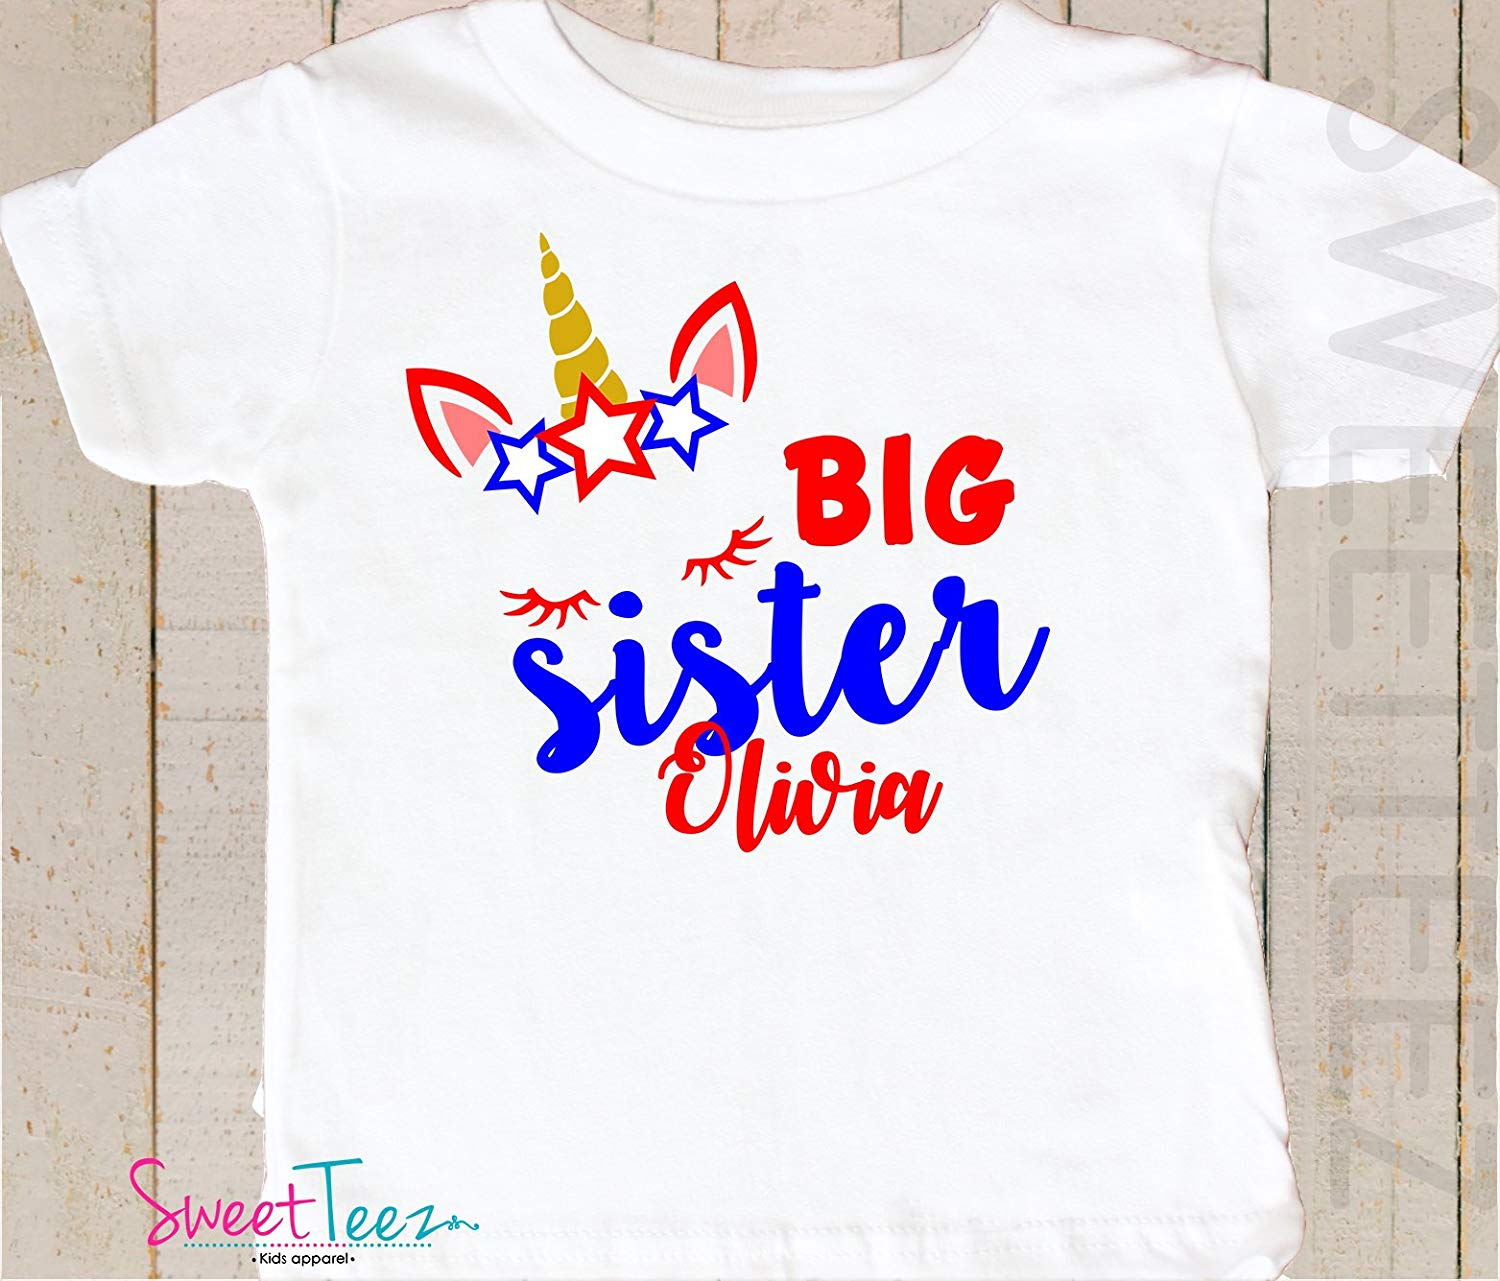 a1653cc9cfc Get Quotations · Big Sister Shirt Personalized 4th Of July Shirt Girl  Unicorn Pregnancy Announcement